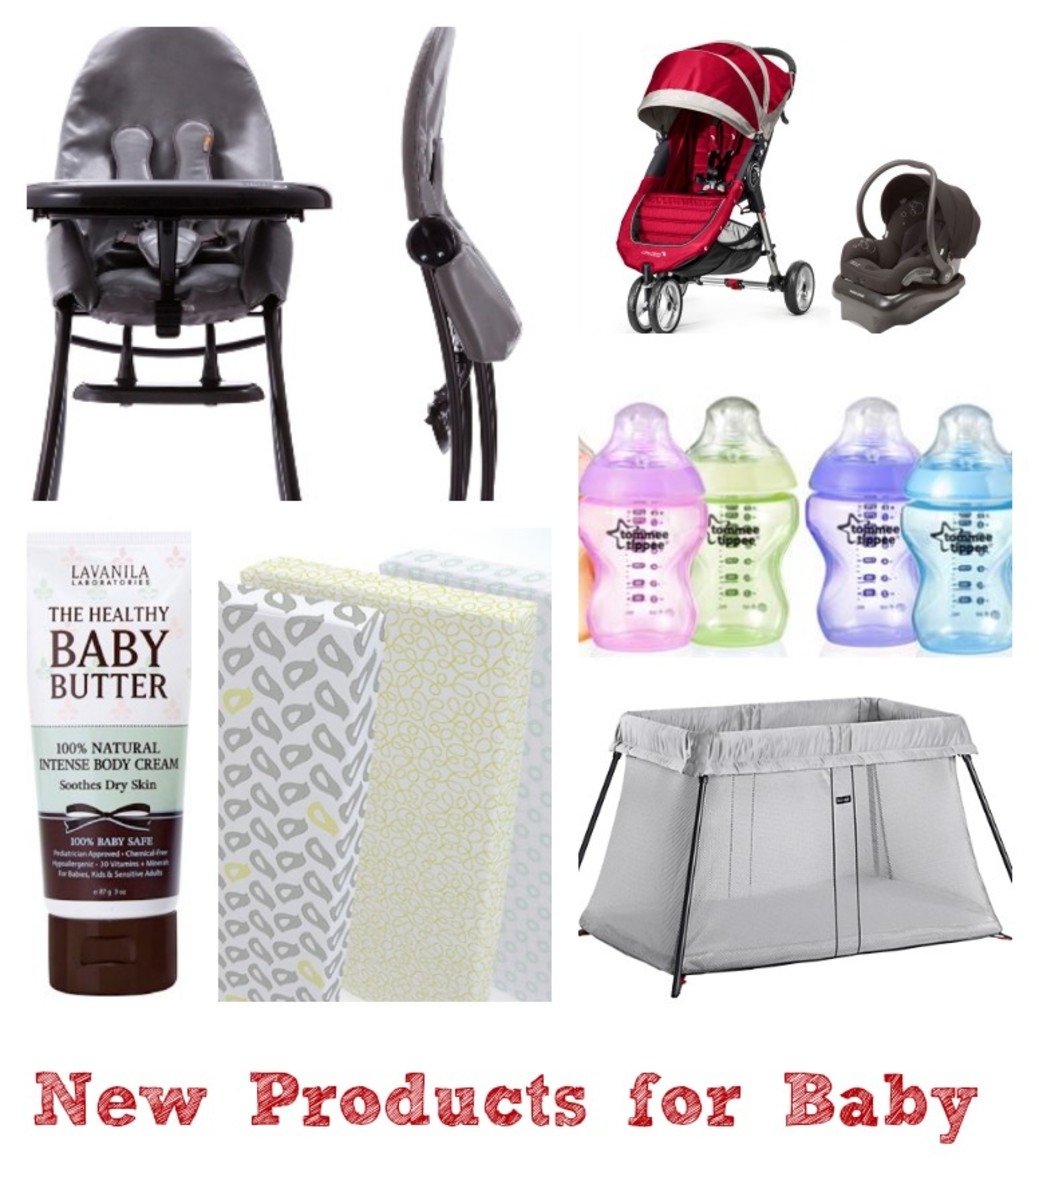 New Products for Baby.jpg.jpg